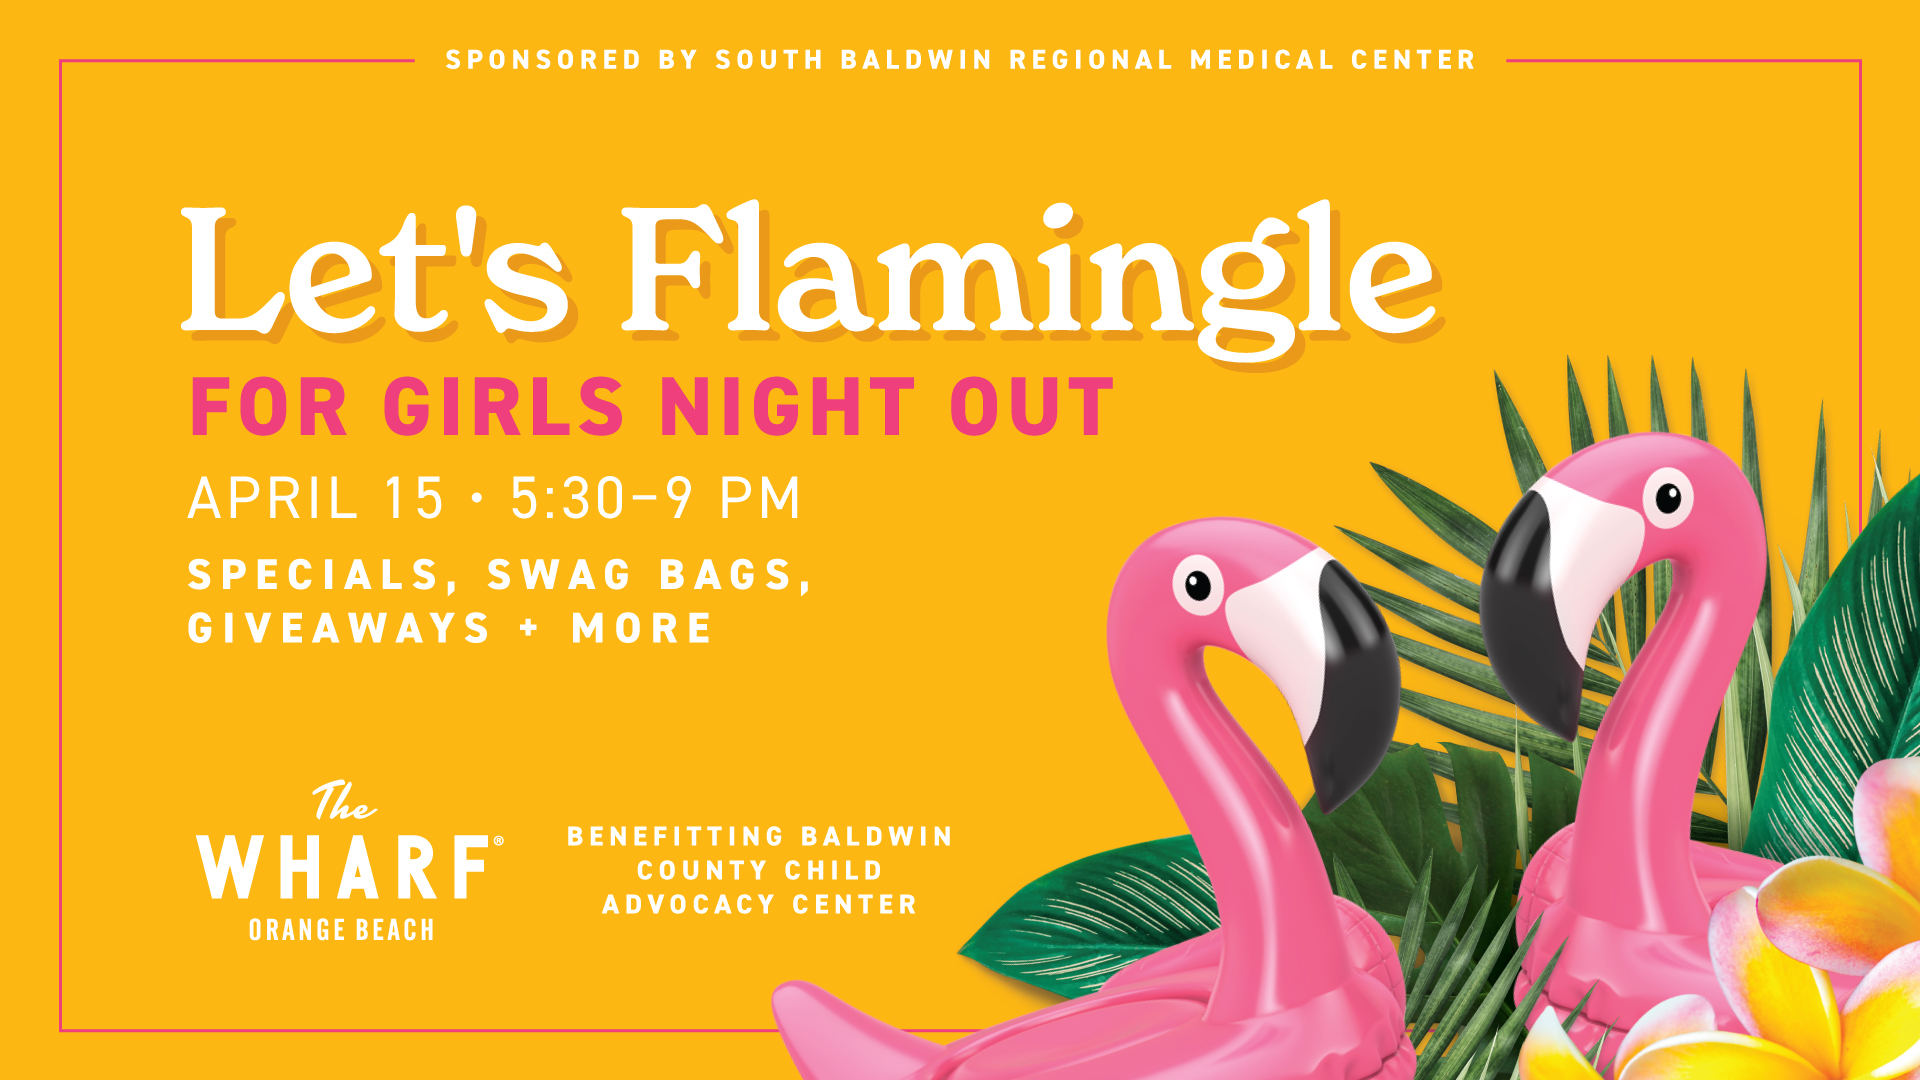 Let's Flamingle for Girls Night Out